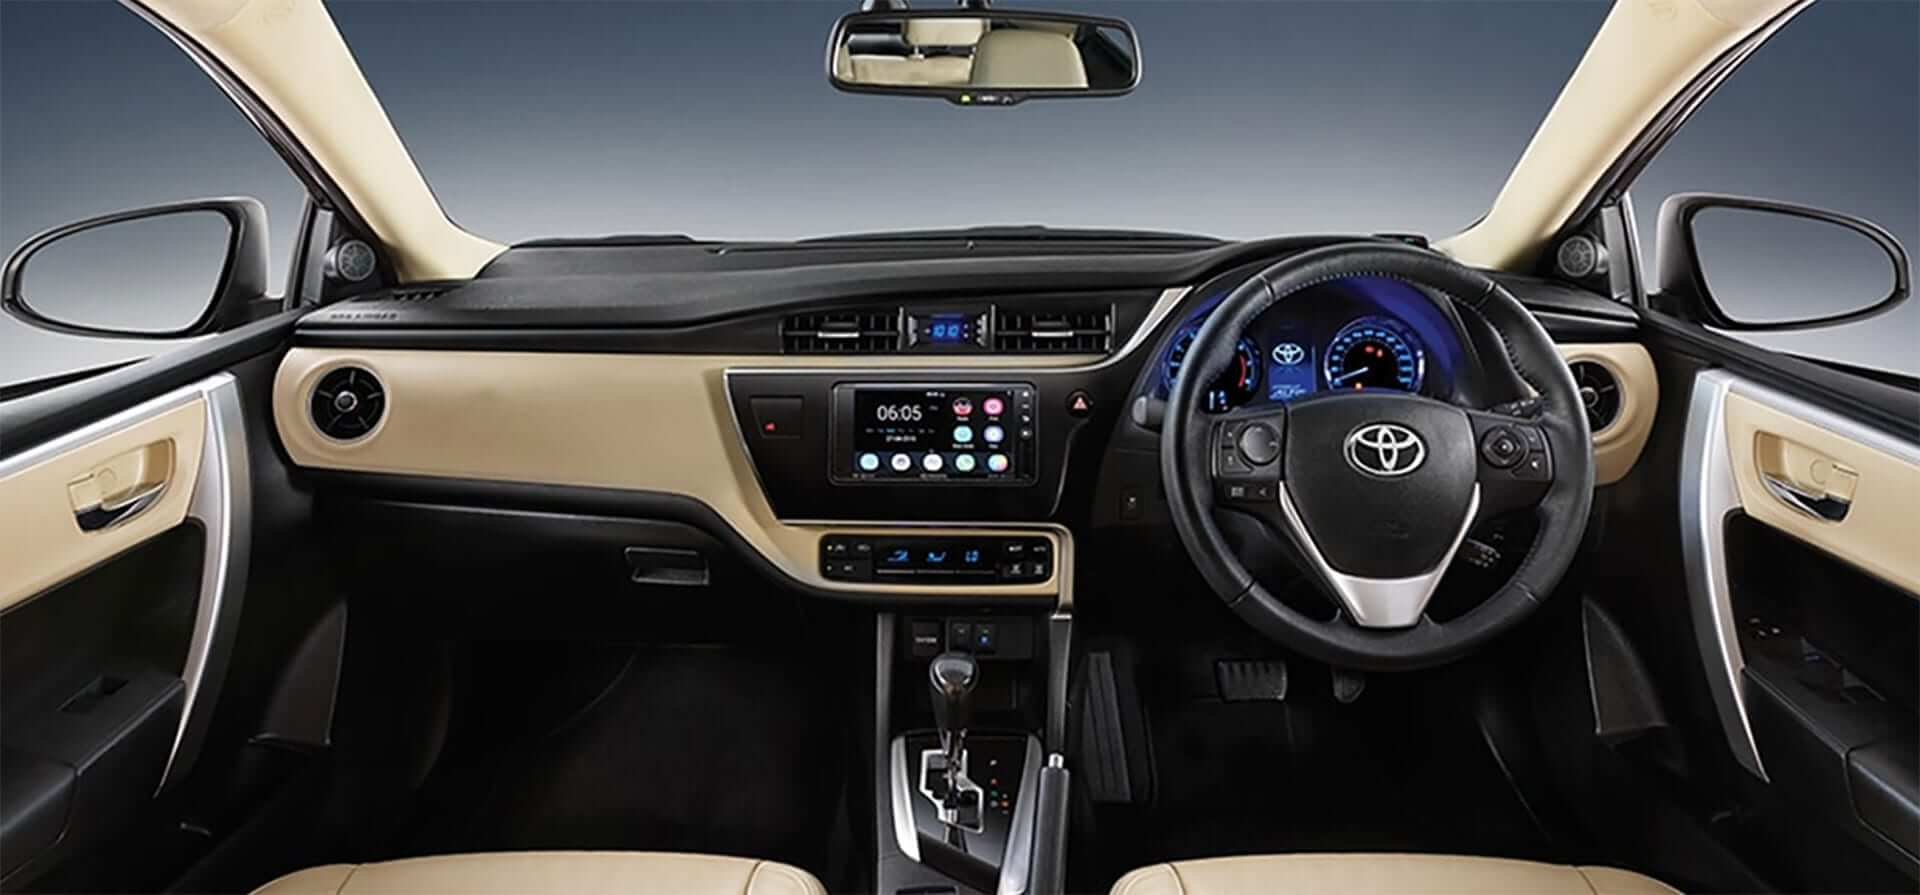 New Cars Trucks SUVs ampamp Hybrids  Toyota Official Site